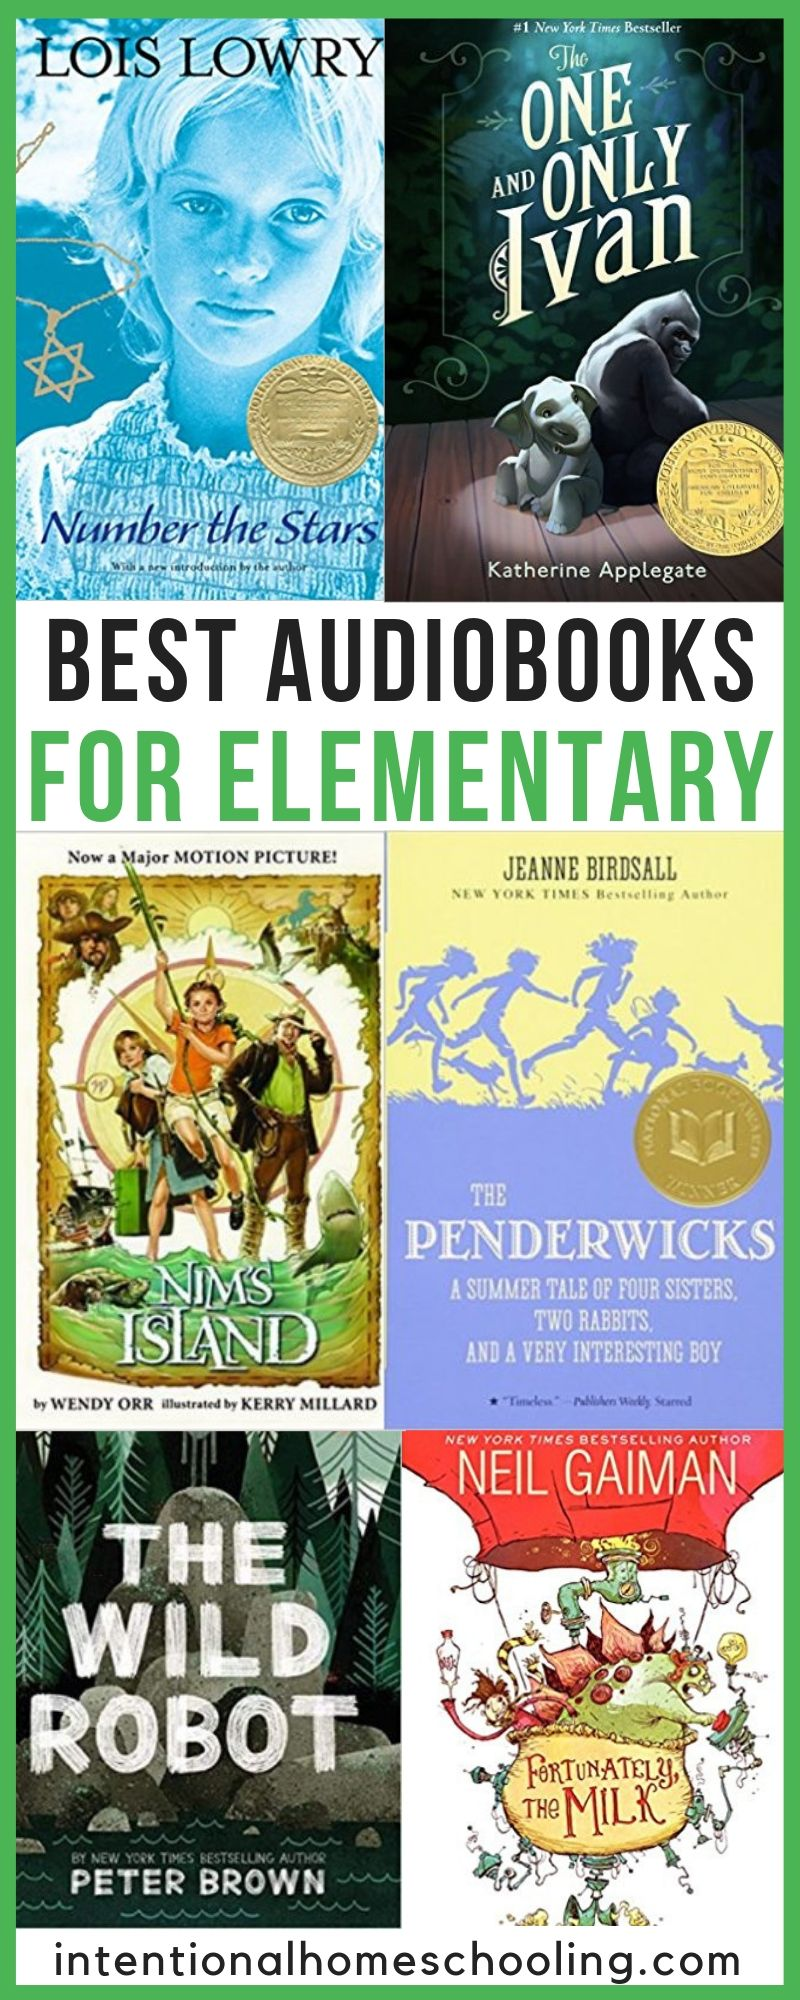 The Best Audiobooks for Elementary - grade books to listen to with grades 1, 2, 3 and 4!